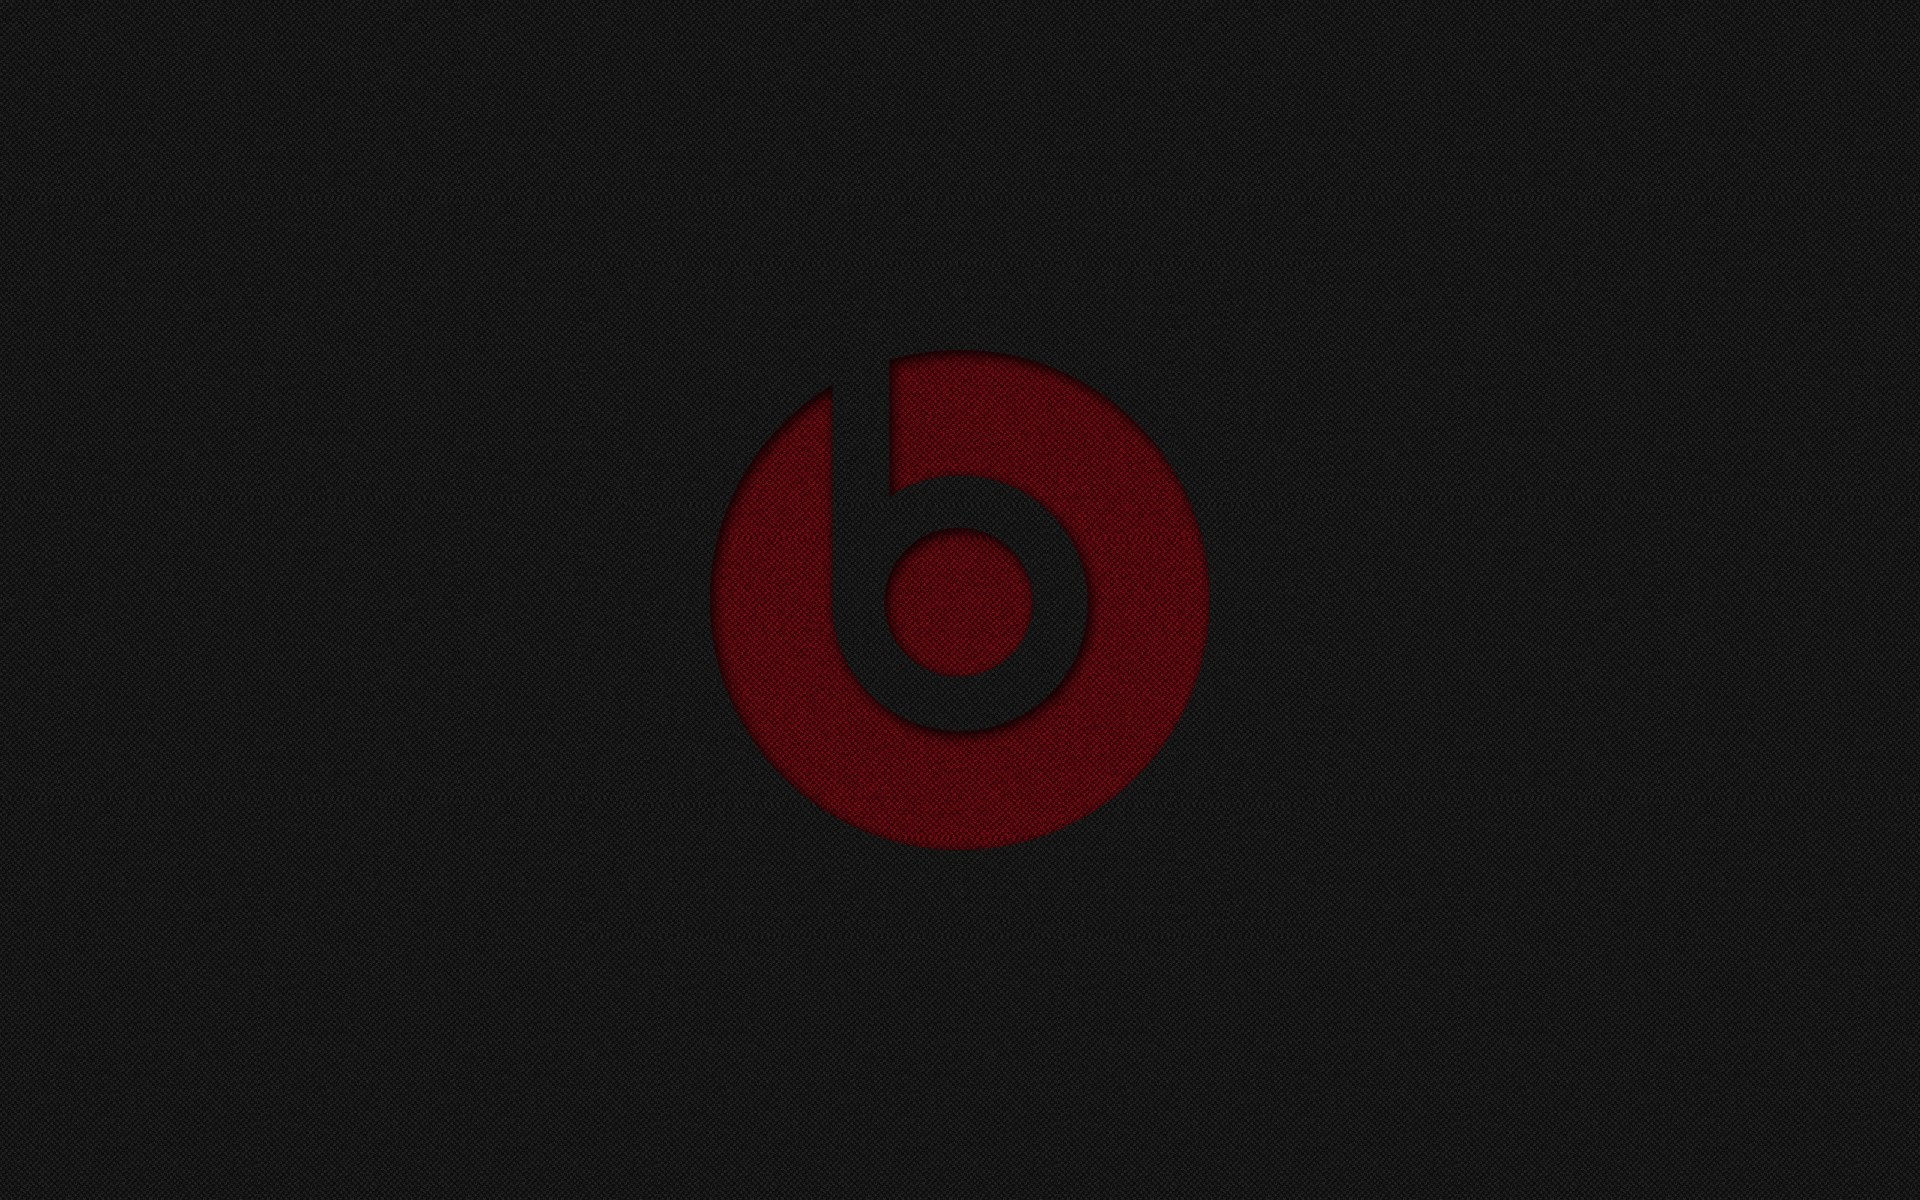 beats by dr dre wallpaper 72 images